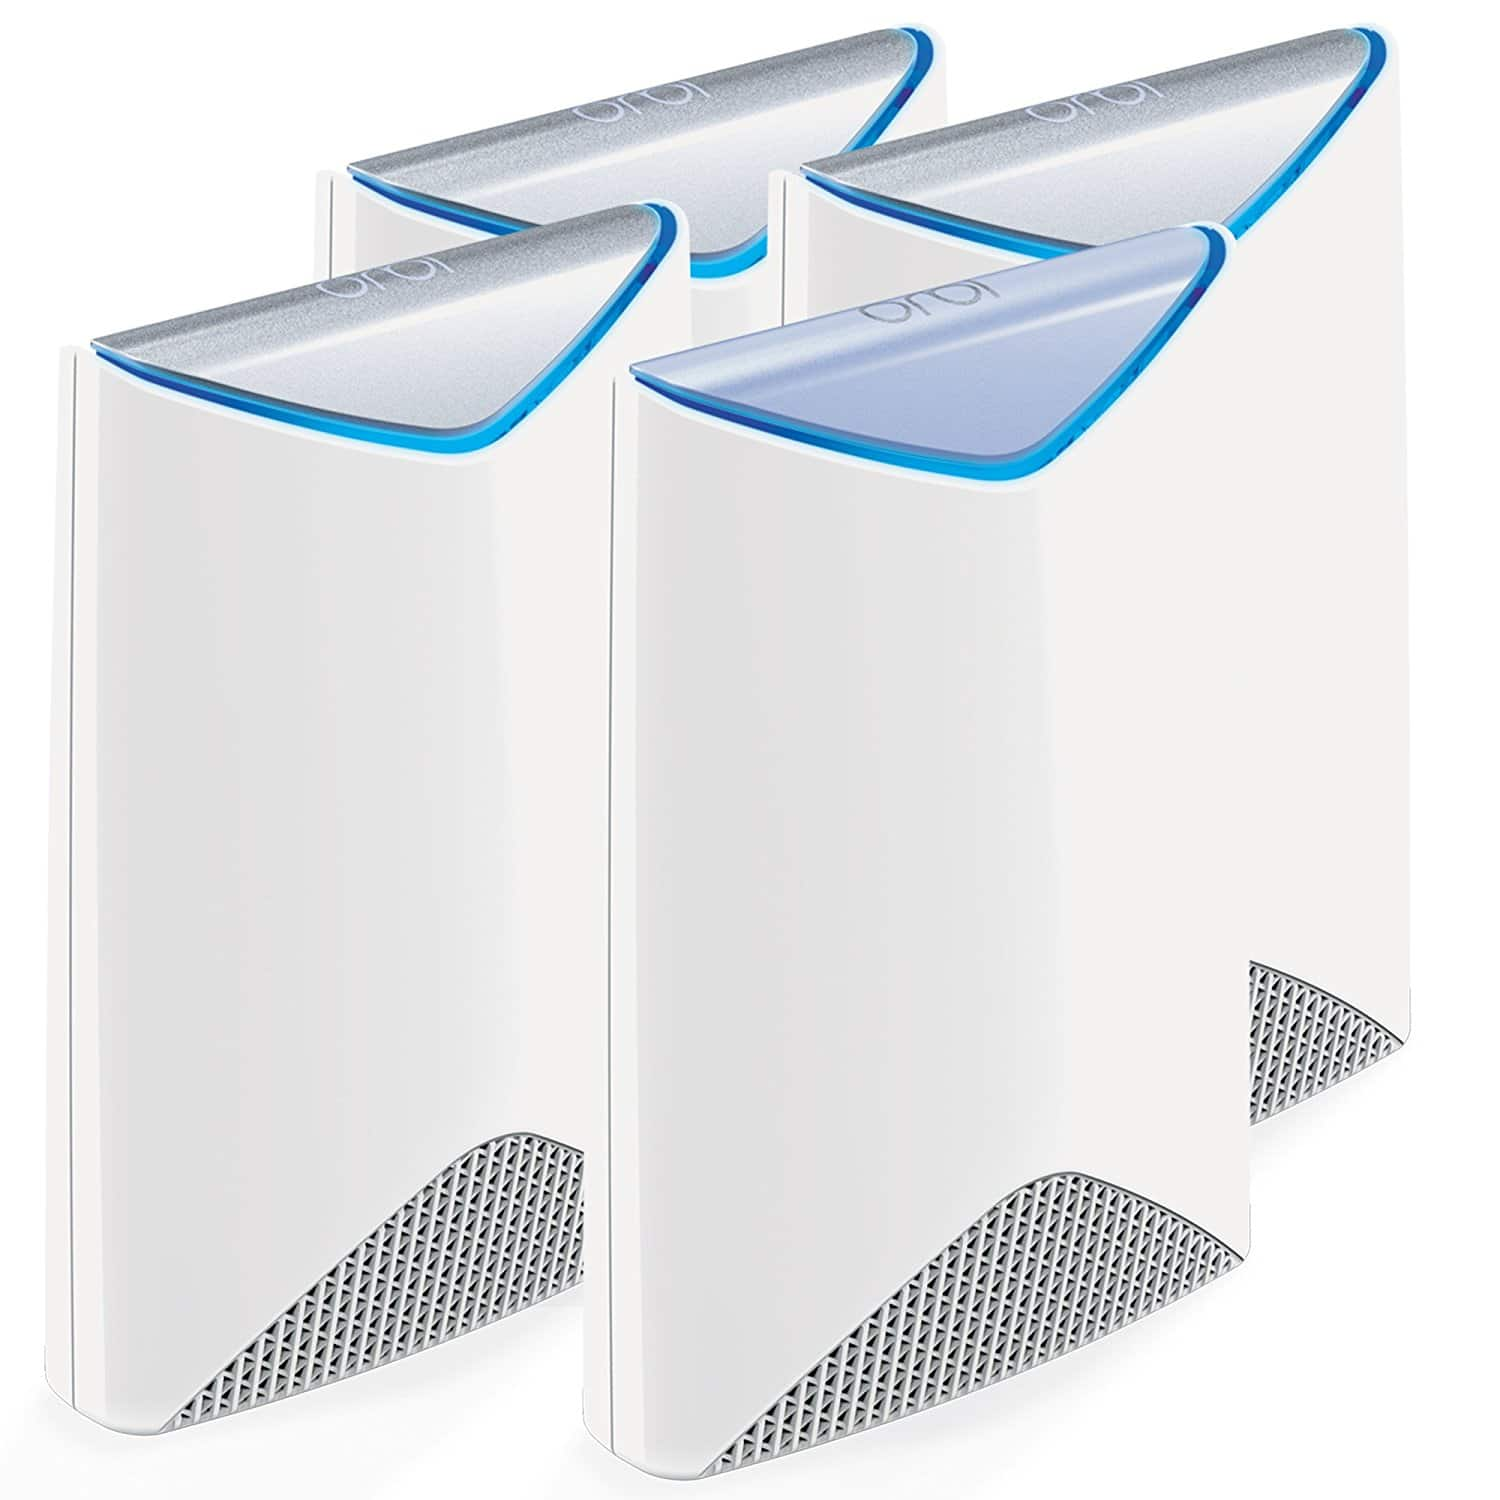 Orbi Pro by NETGEAR – AC3000 Tri-band WiFi System for Business 4-Pack $774.99 - 4-Pack WiFi System (Up to 10,000 sqft)